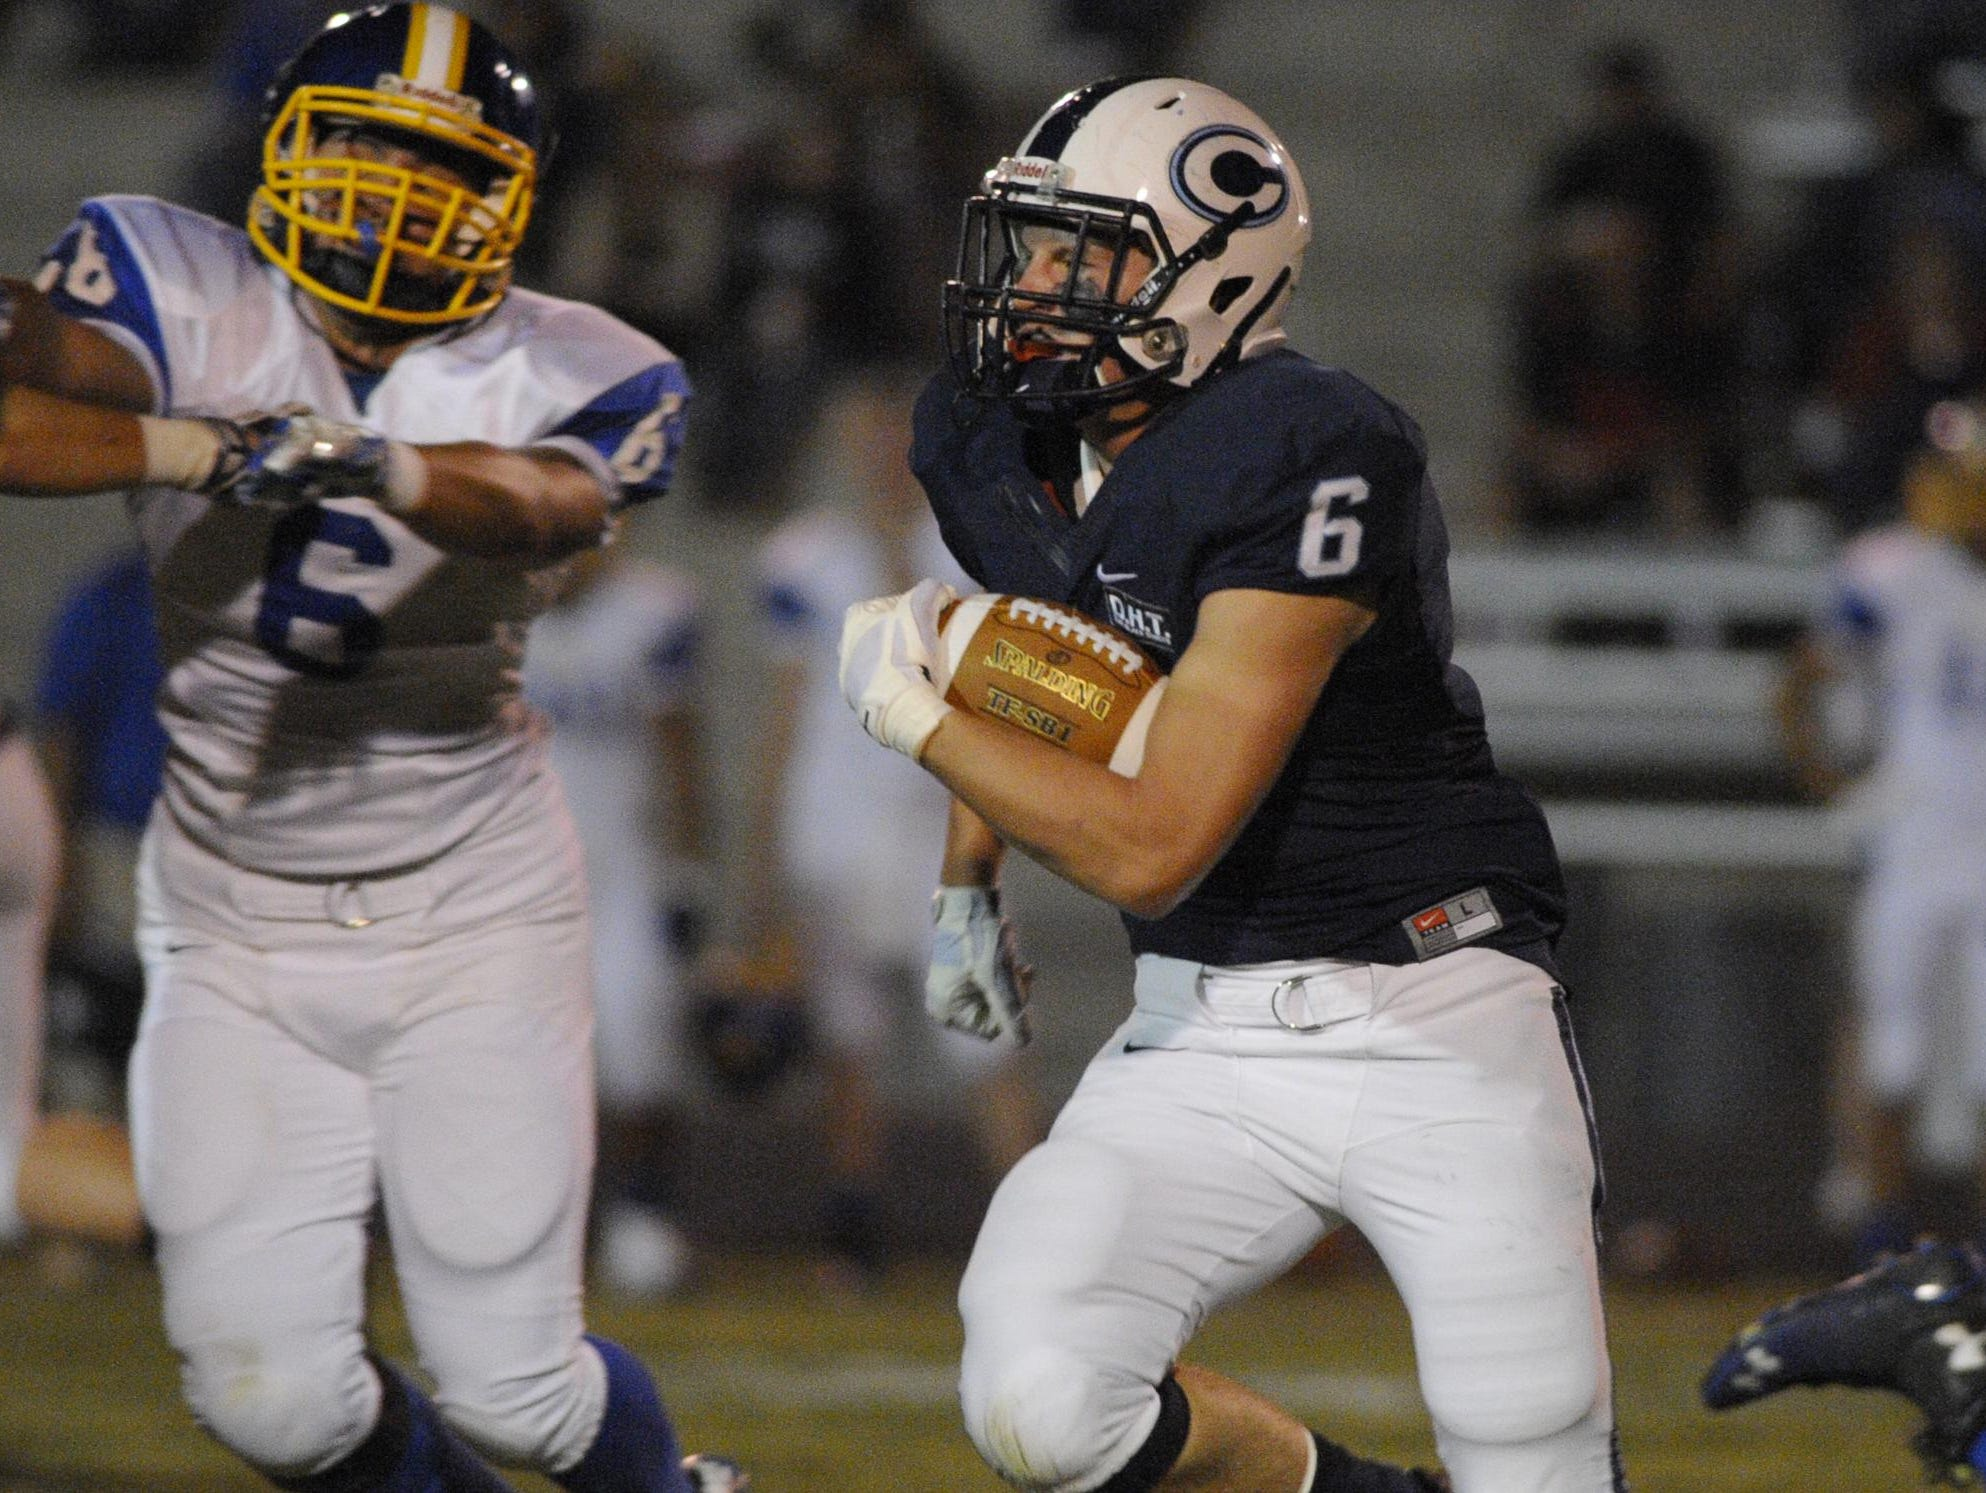 Kolin Stock is the featured running back for CVC in 2015.